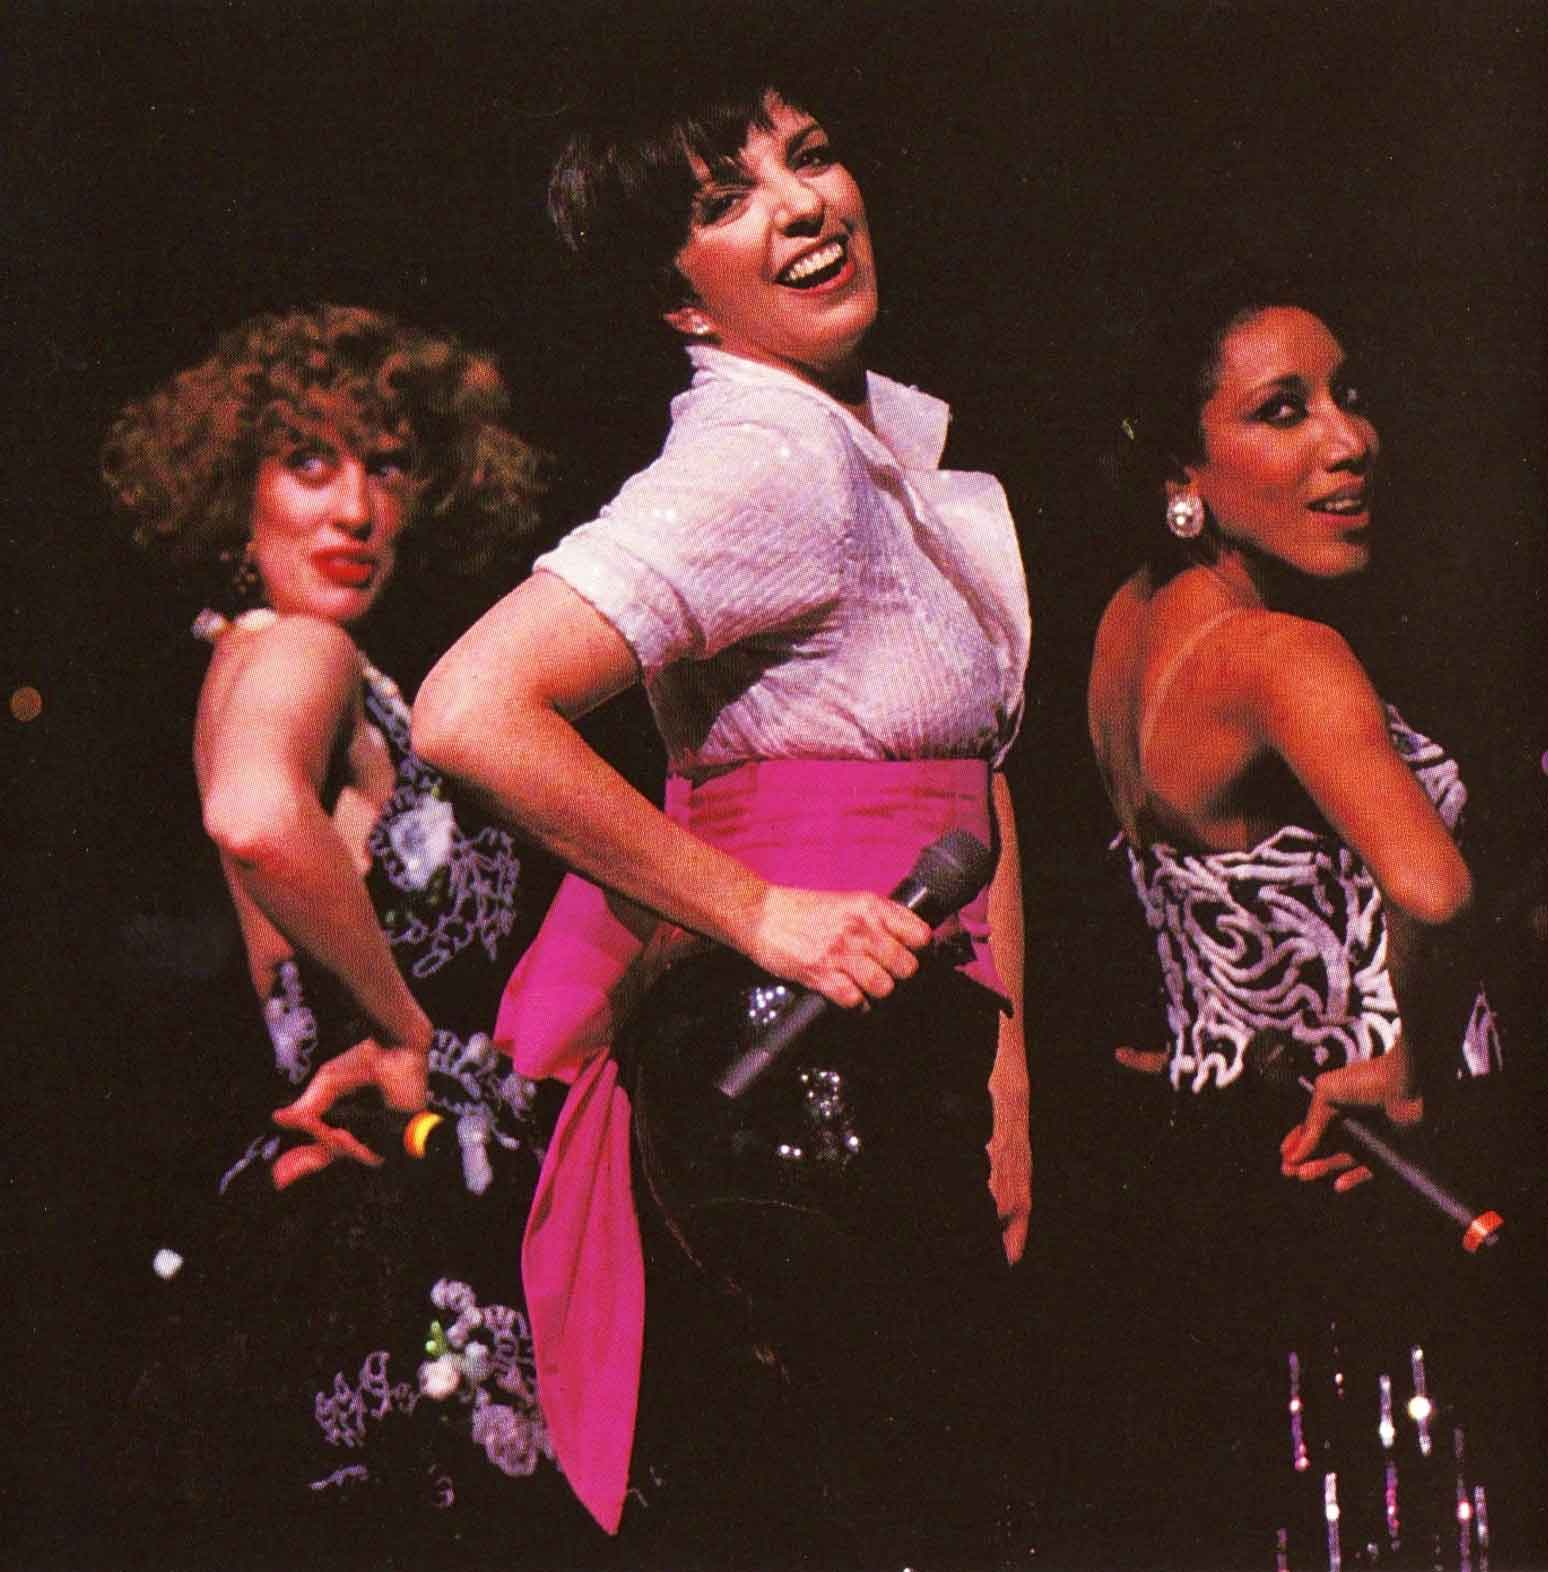 Ruth Gottschall, Liza Minnelli and Mamie Duncan Gibbs. They are dancing together and looking downstage over their right shoulder.